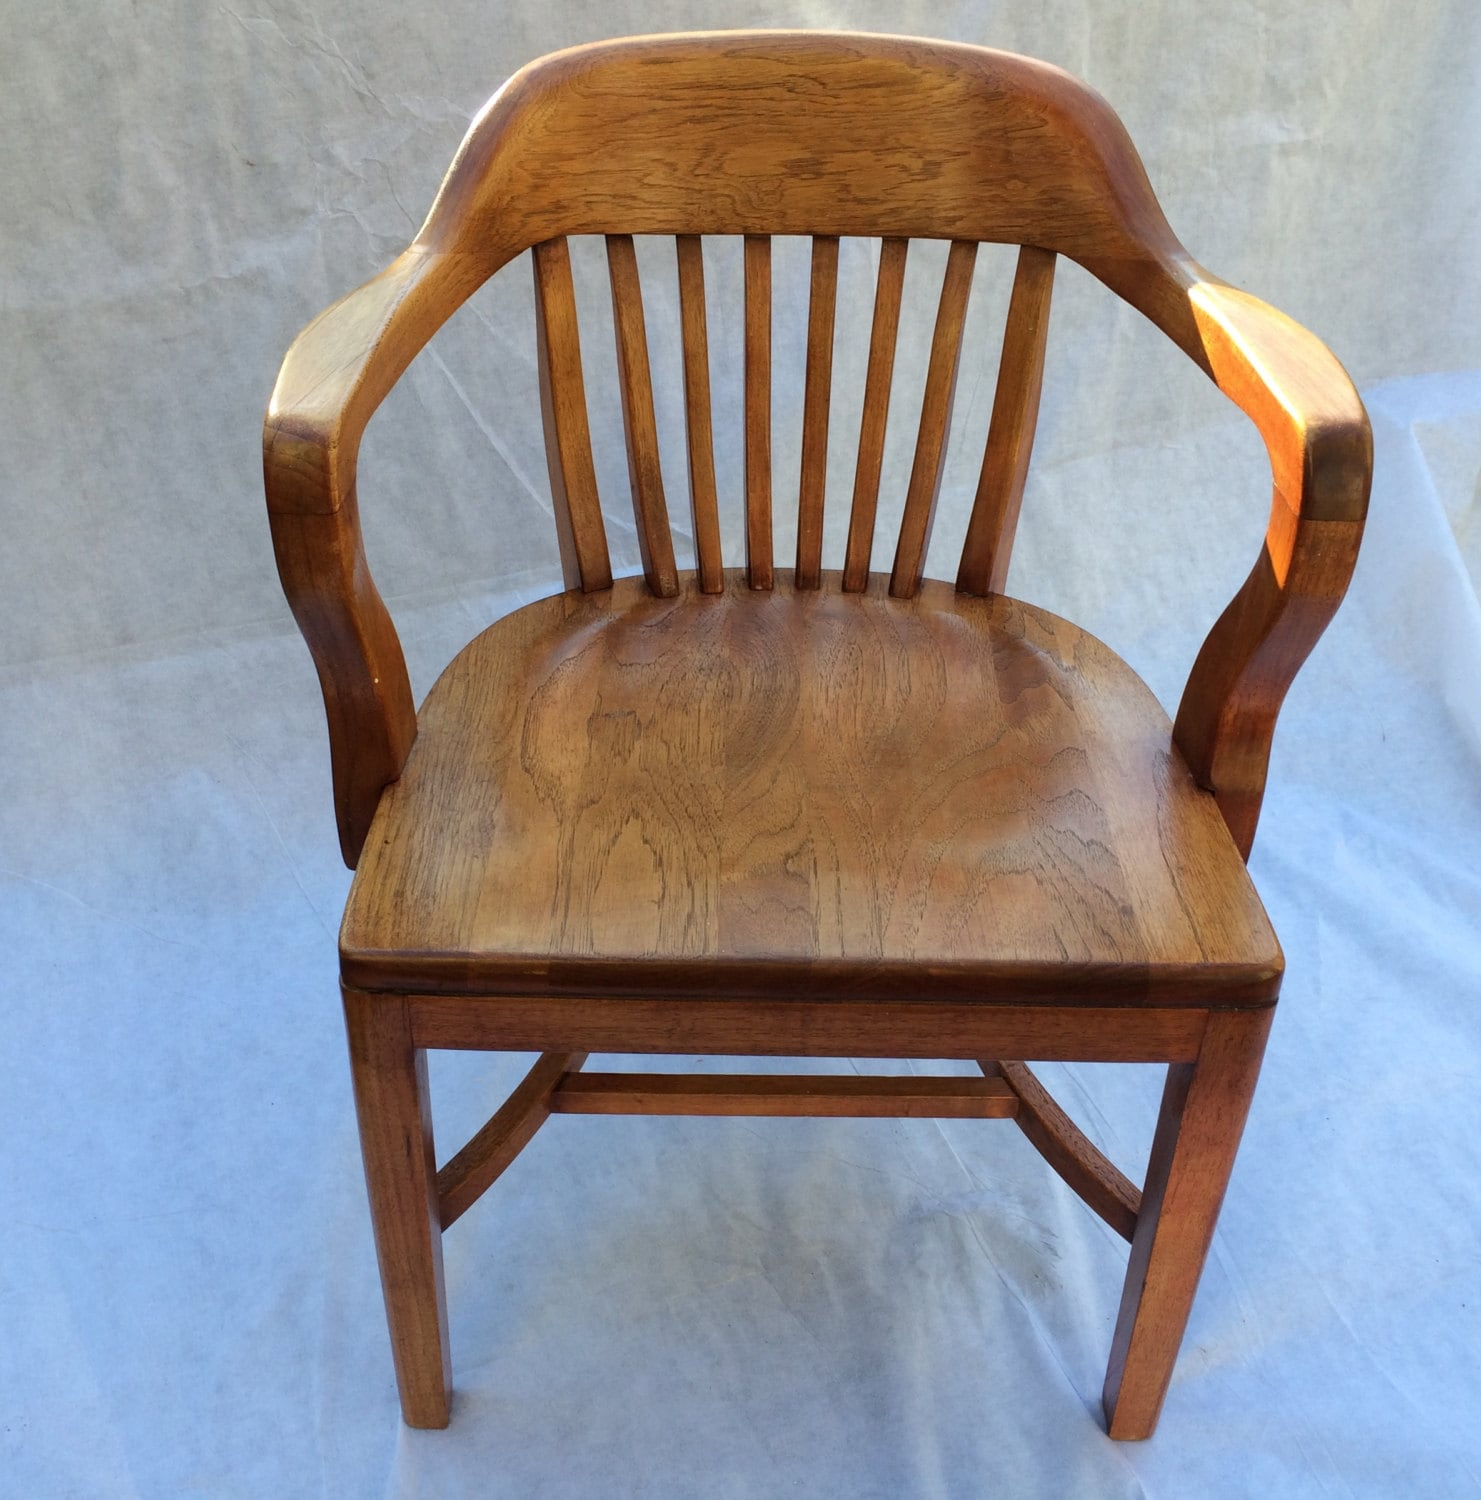 Wooden Bankers Chair Vintage Bankers Chair Library Chair Boling Chair North Carolina